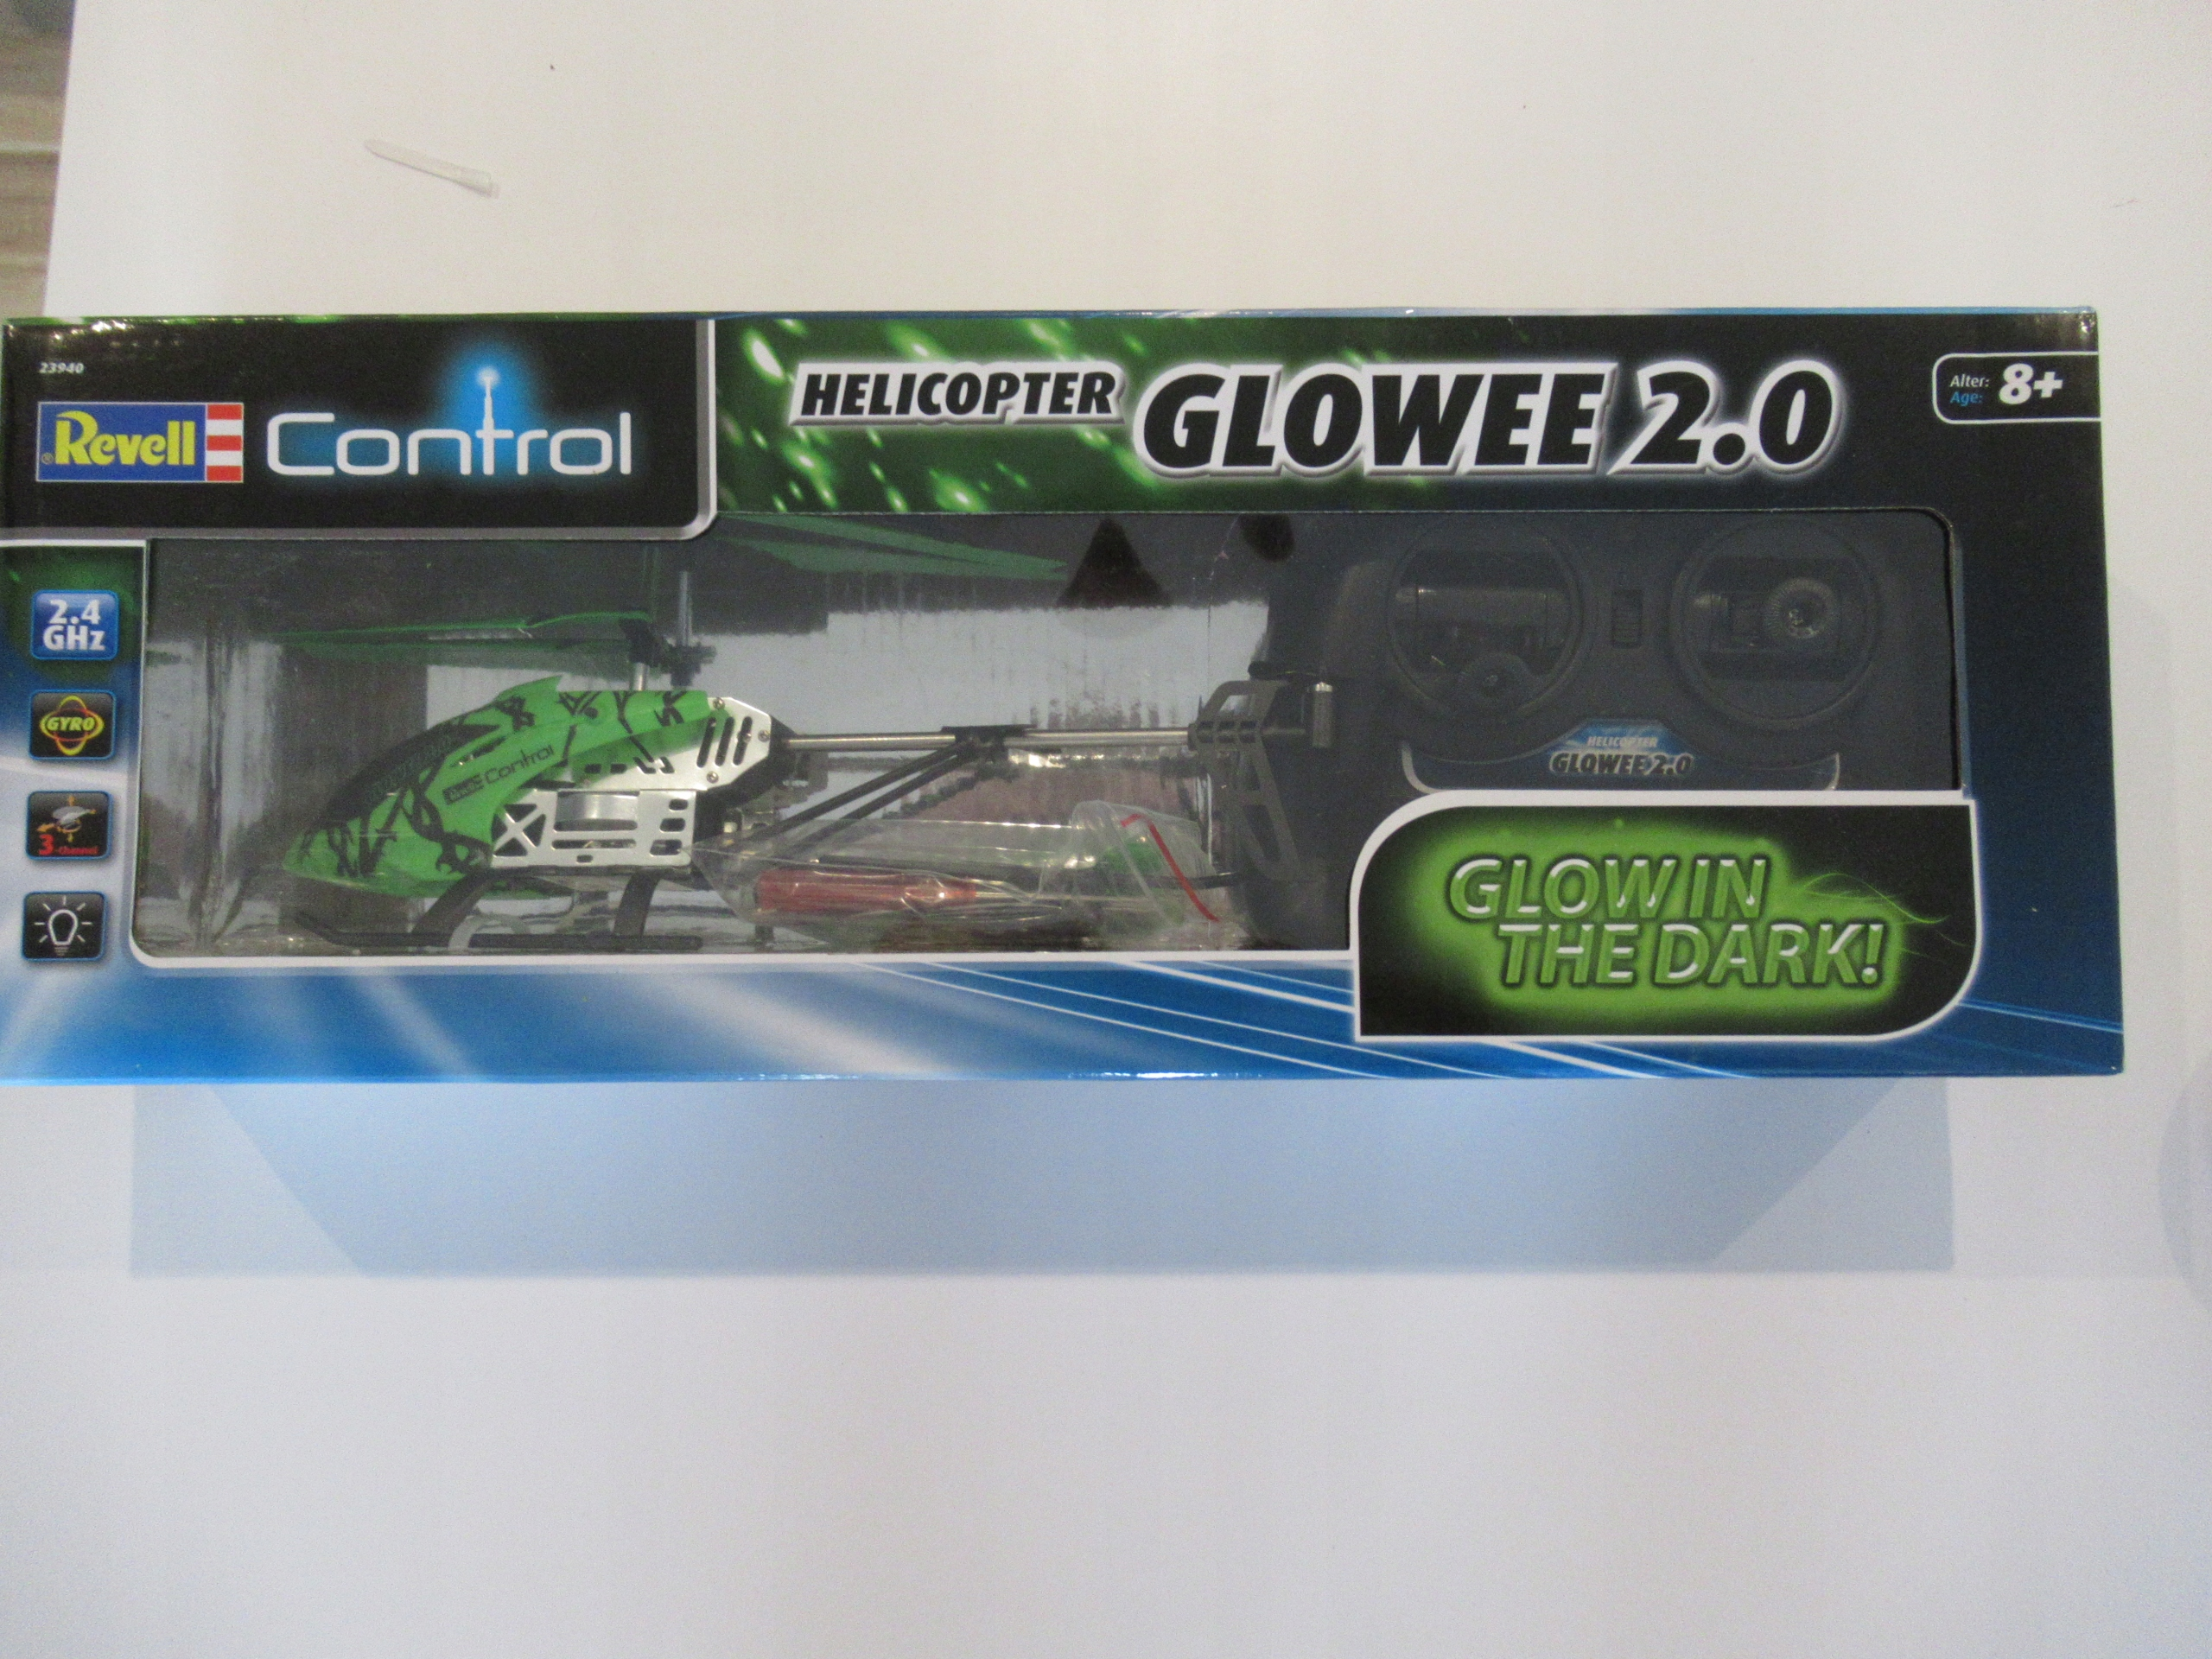 Revell 23940 Helicopter Glowee 2.0 Ferngesteuertes